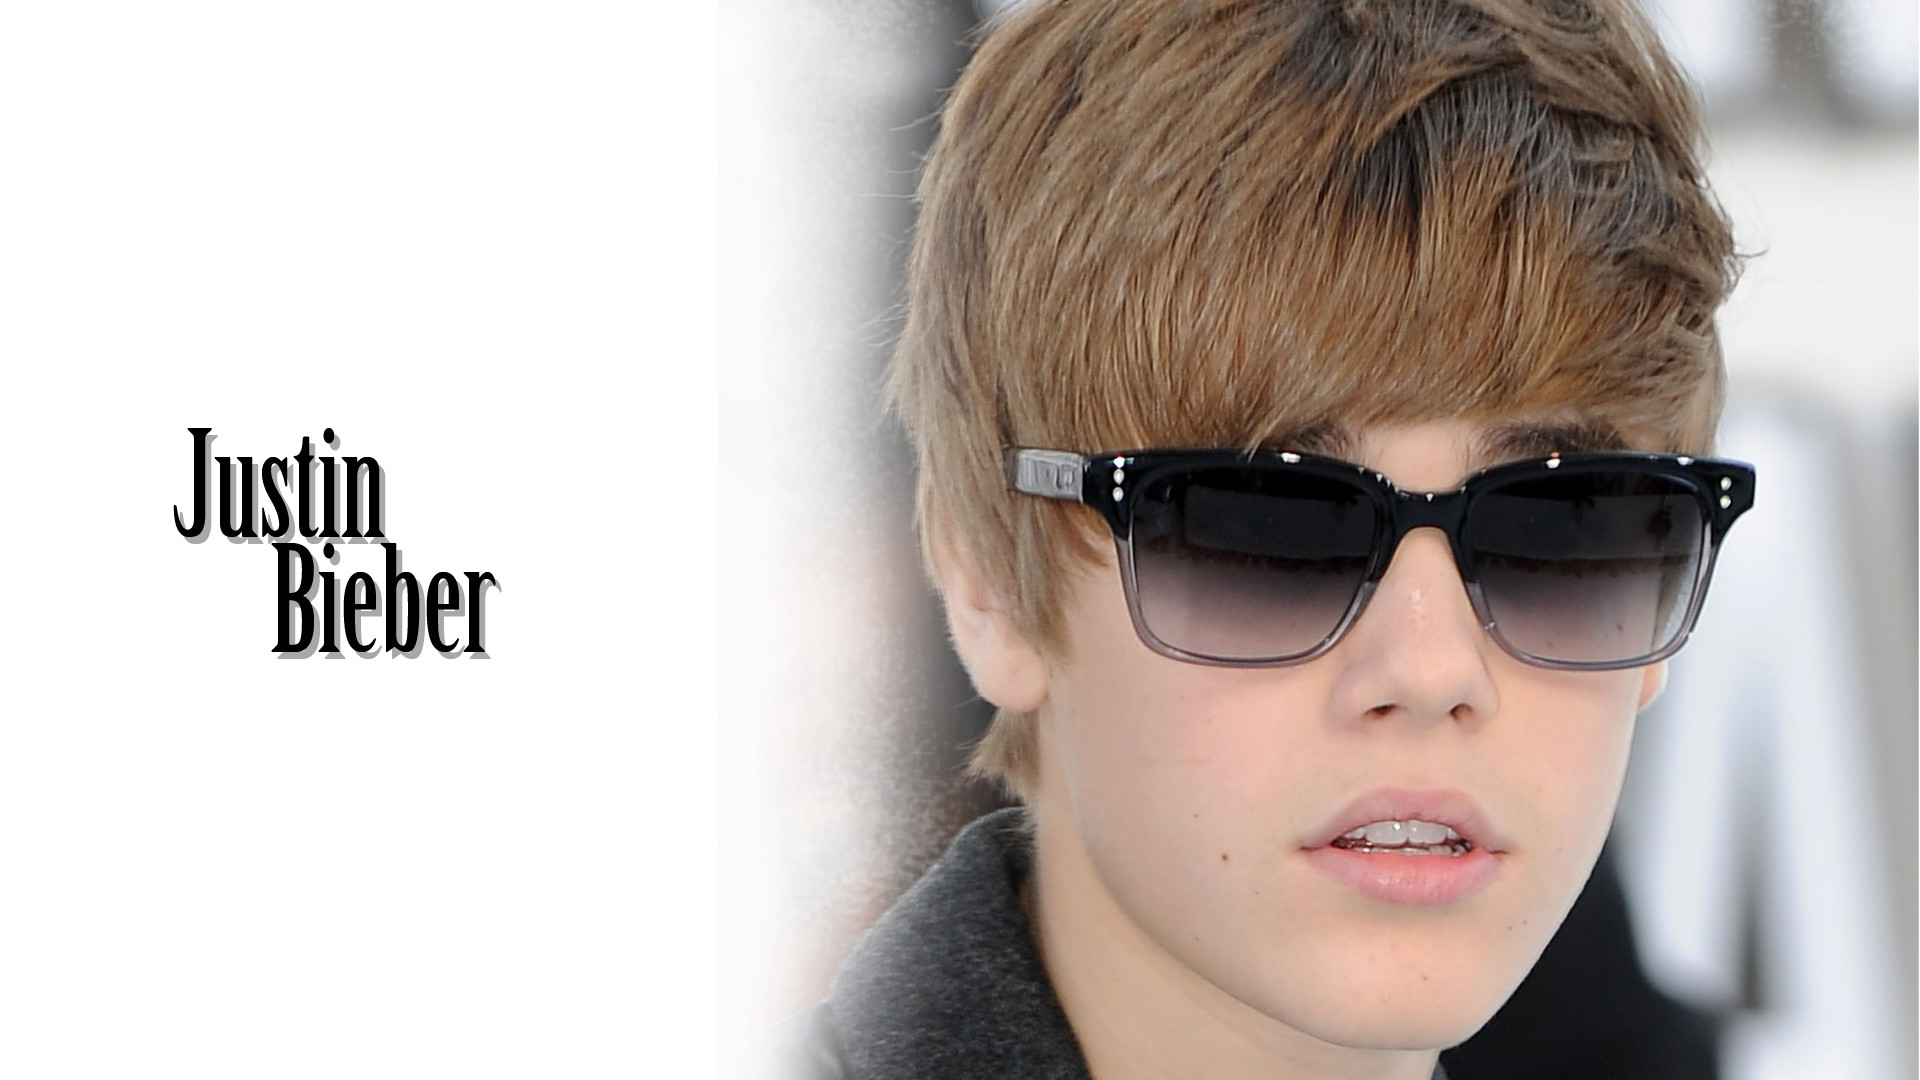 1920x1080 Justin Bieber wallpapers purple shade